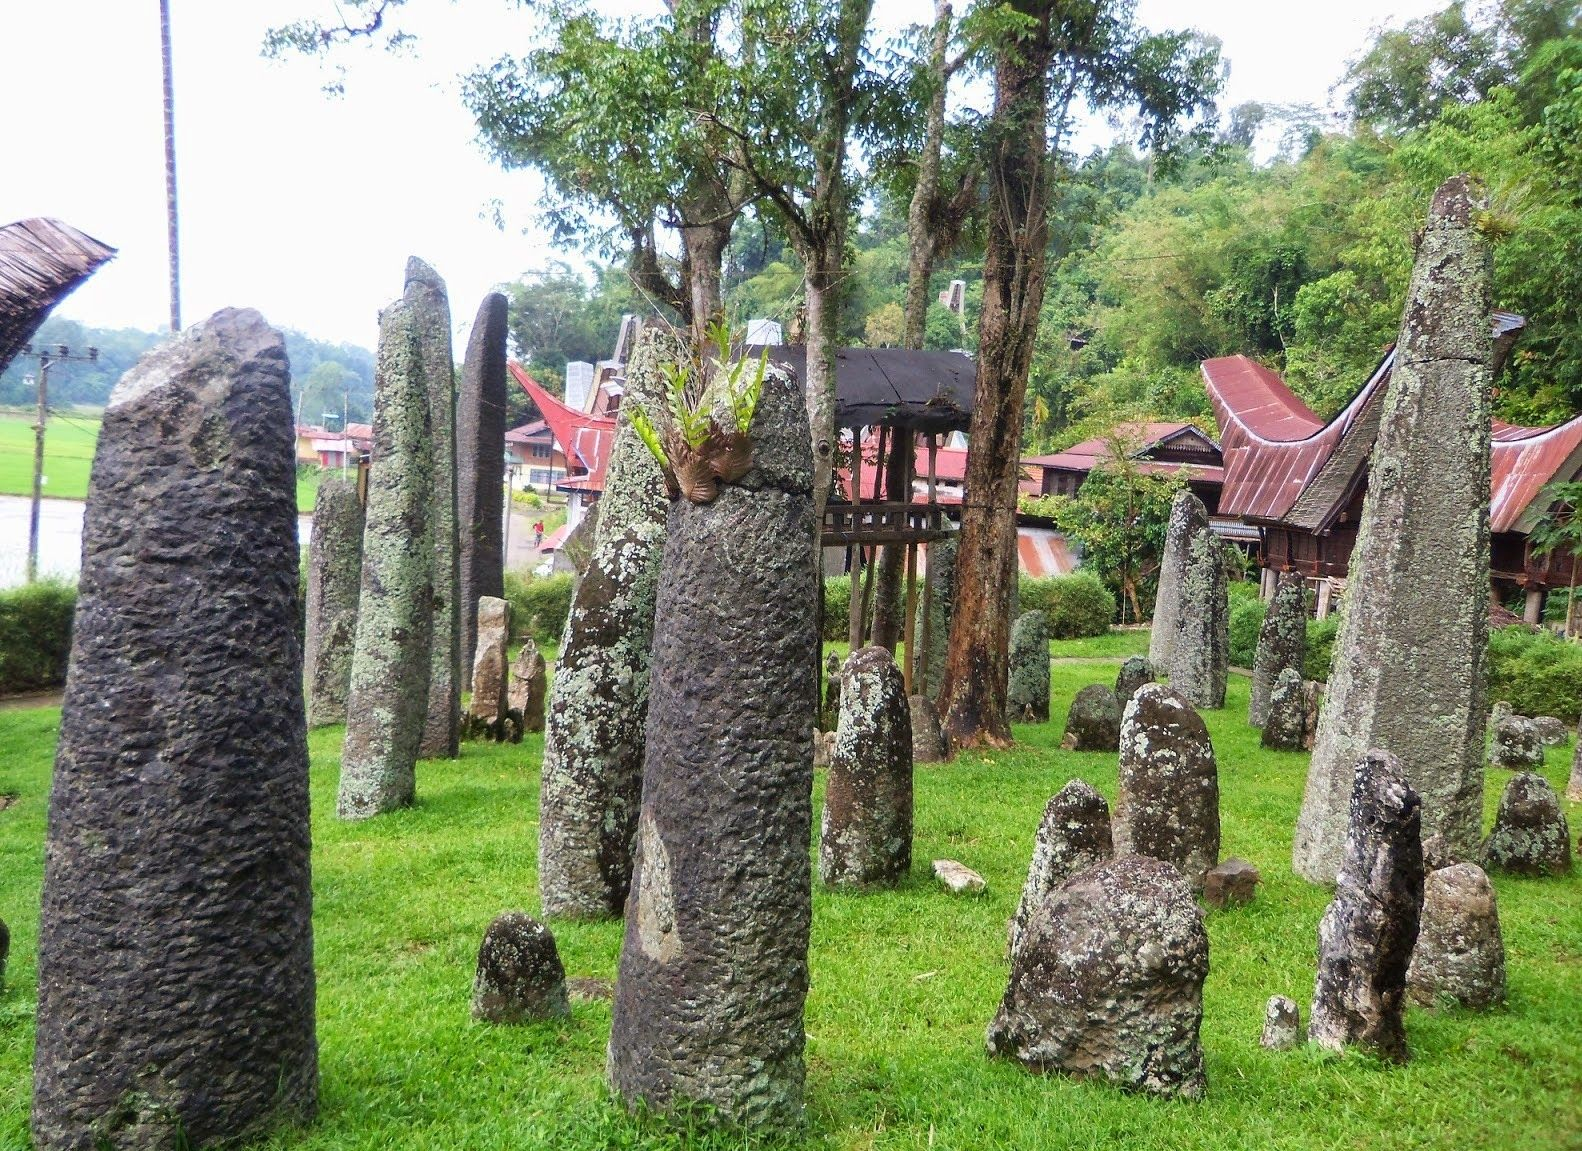 In this area you can find about 56 stone menhirs in a loop with 4 trees in the middle. Most stone menhir has a height of about 2-3 meters. From this place you can see the beauty of Rantepao and surrounding valleys. Located in an area with ketinggian Season 1300 Meters above sea level.